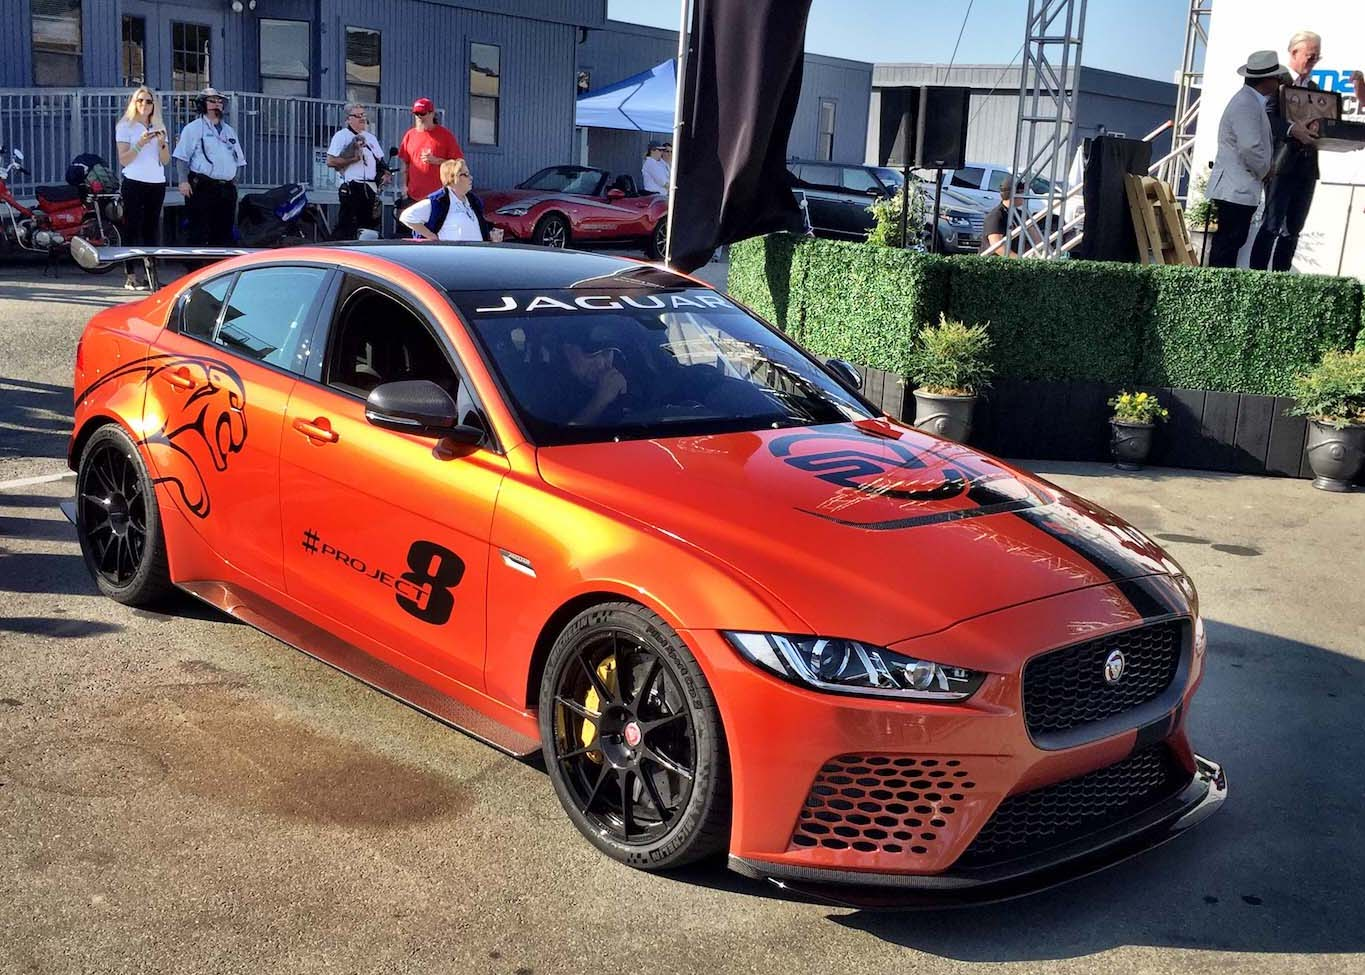 Jaguar Xe Sv Project 8 Jaguar Xe Sv Project 8 A Star Is Born Automotive Rhythms